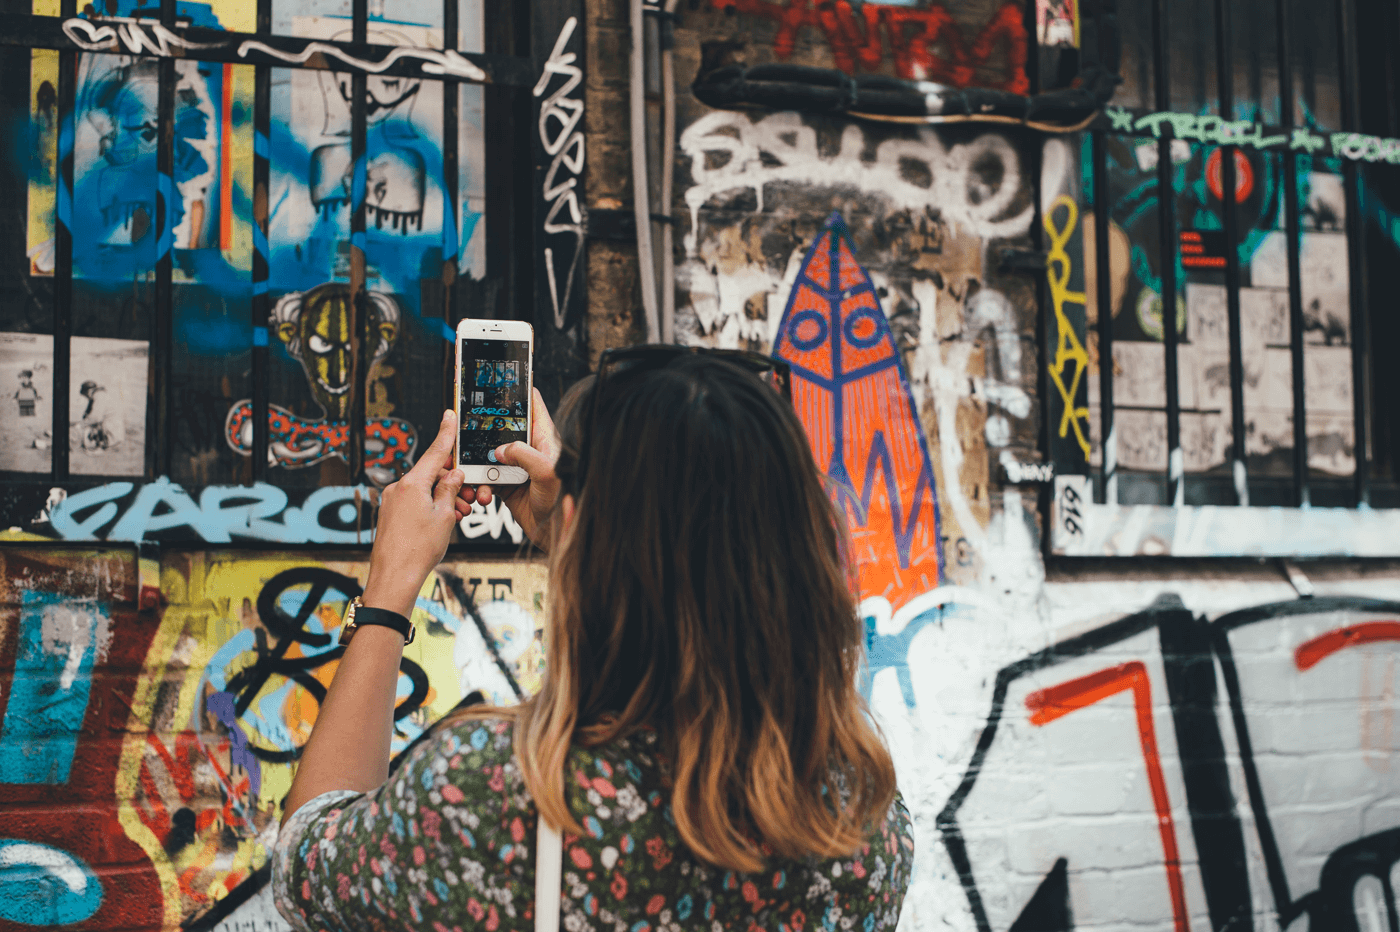 Instagram for Business: 30 Tips to Grow Your Audience and Stand Out on Instagram